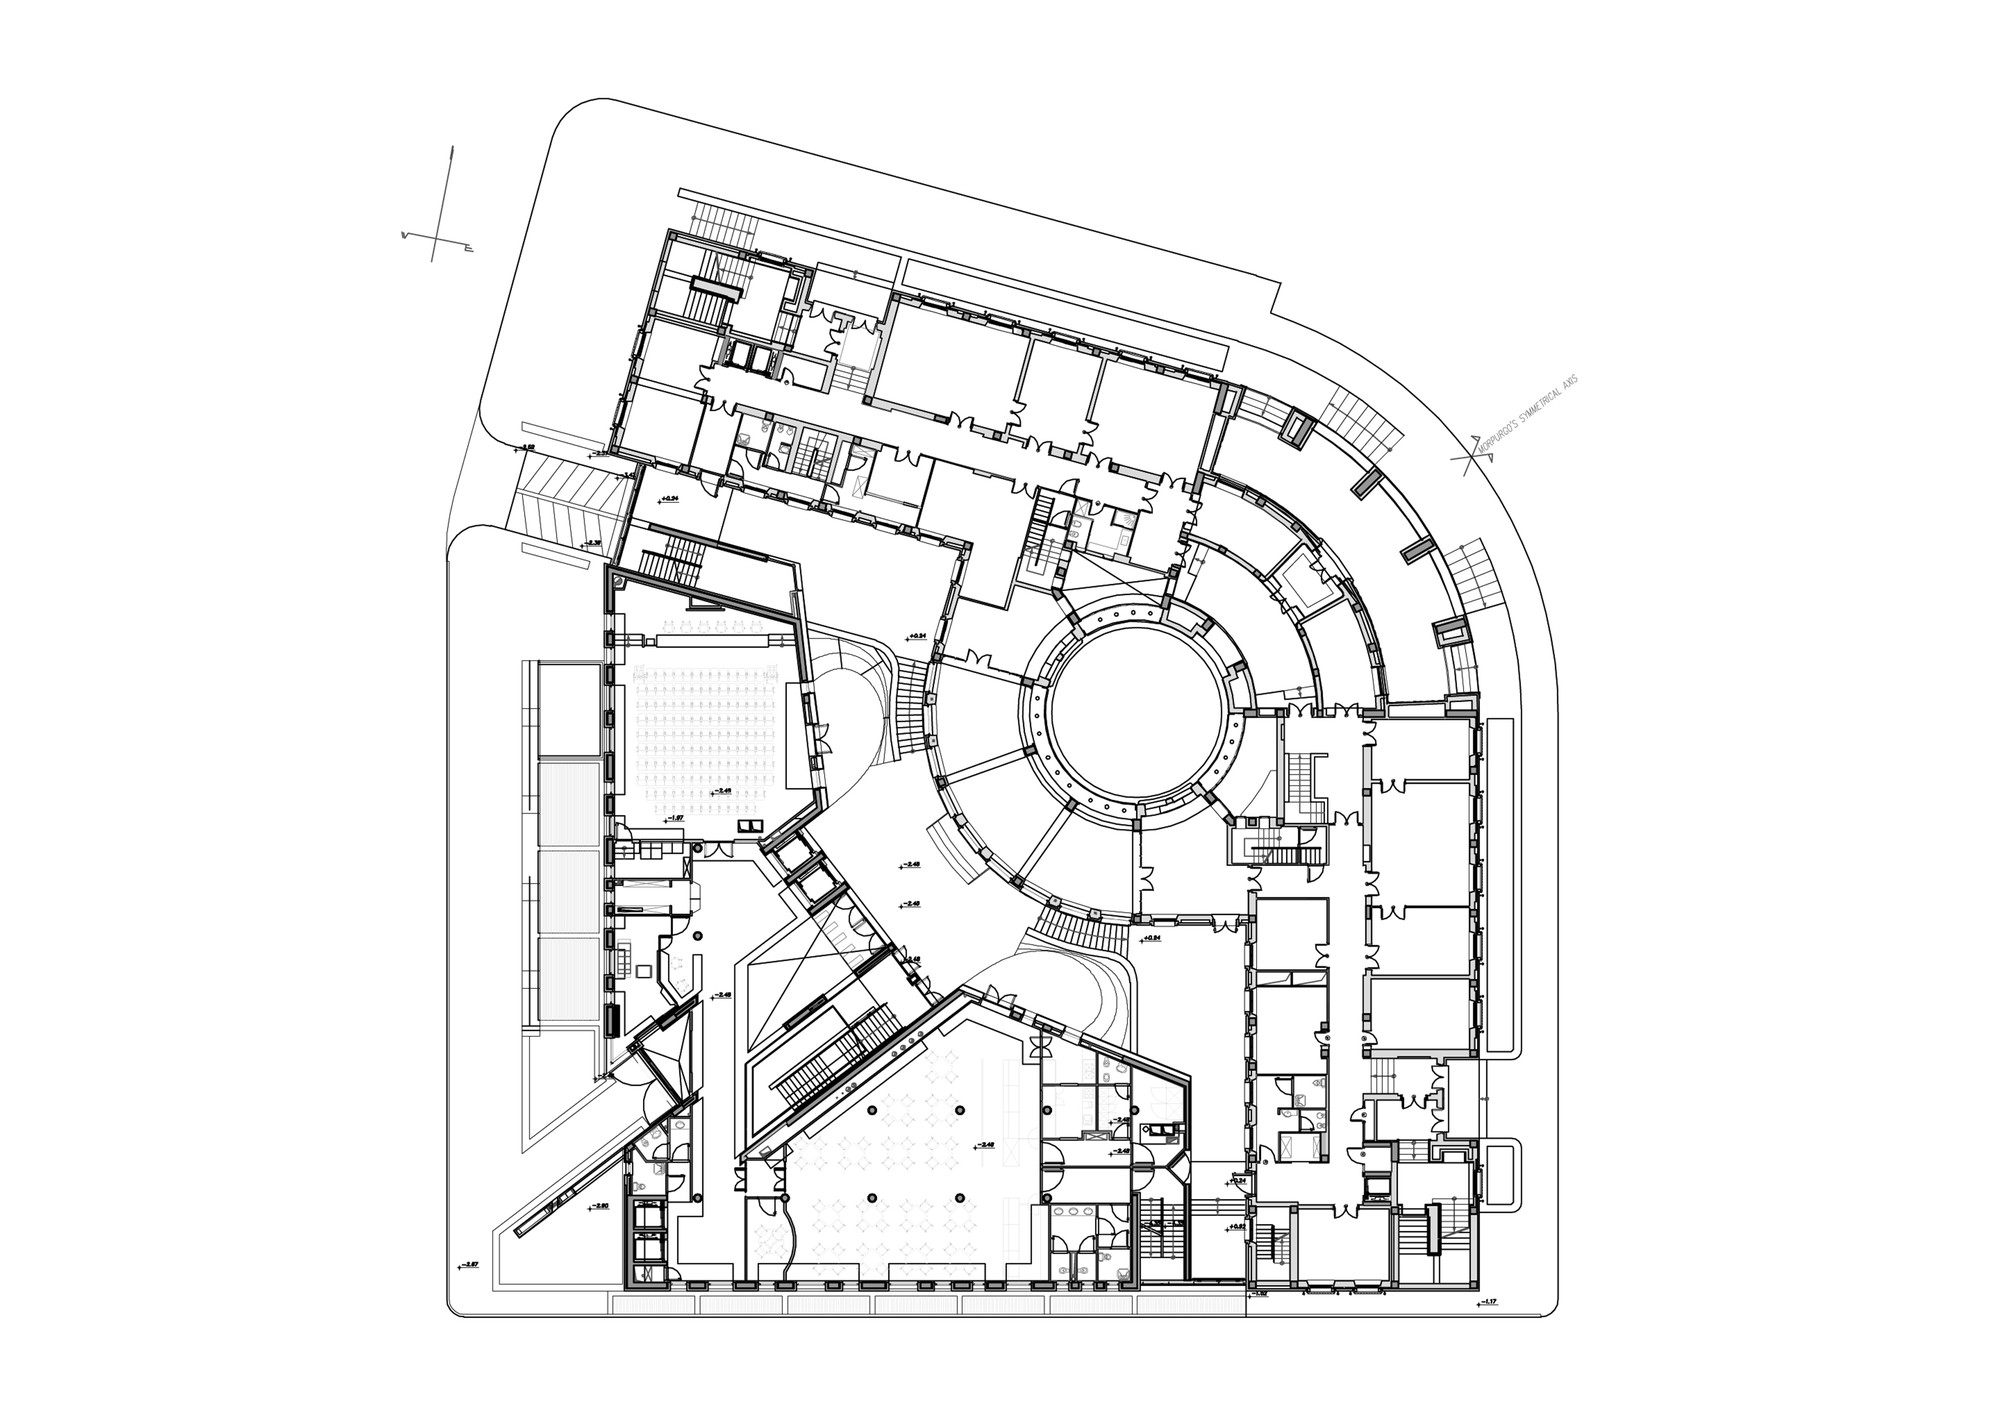 2 additionally Bank Of Albania Hq Renovation Petreschi Achitects besides 484911084860025211 also Fireplace Parts Diagram in addition Roman Architecture 161138355. on old world stone house plans